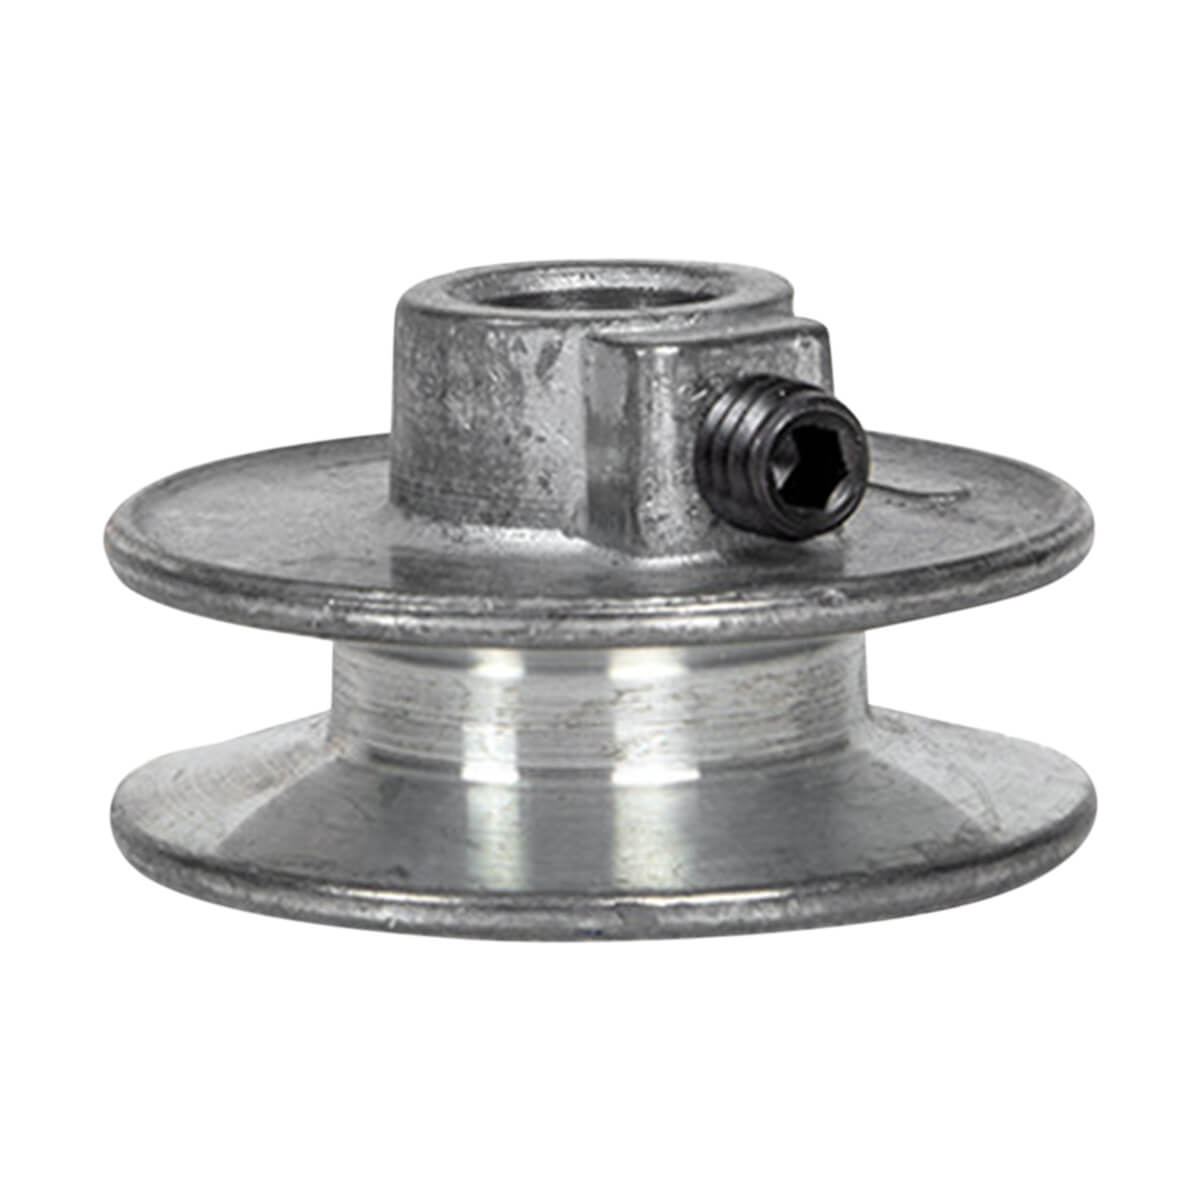 "Aluminum Pulley for A-Belts - 3"" x 5/8"""